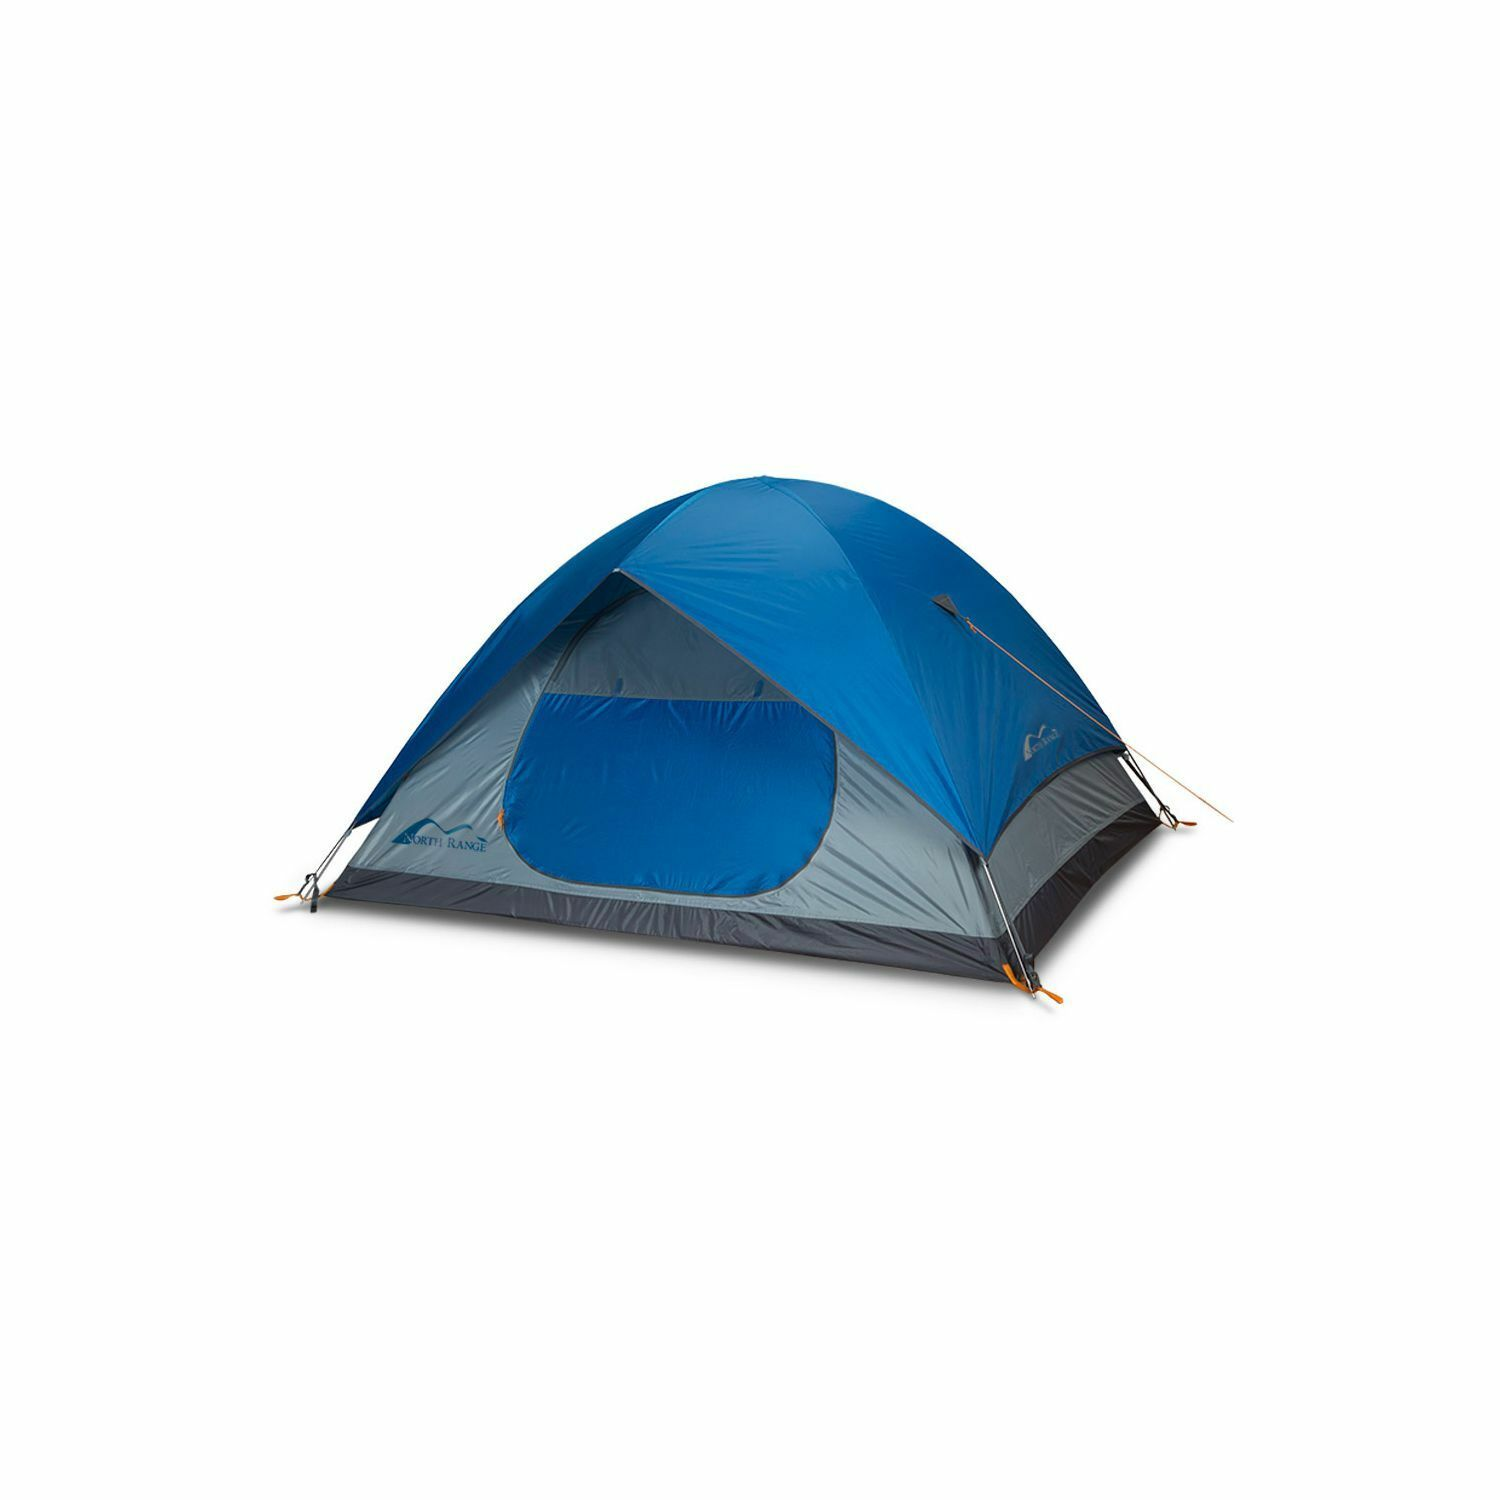 Cross Country 4-Person Water-Resistant Camping Tent, bluee